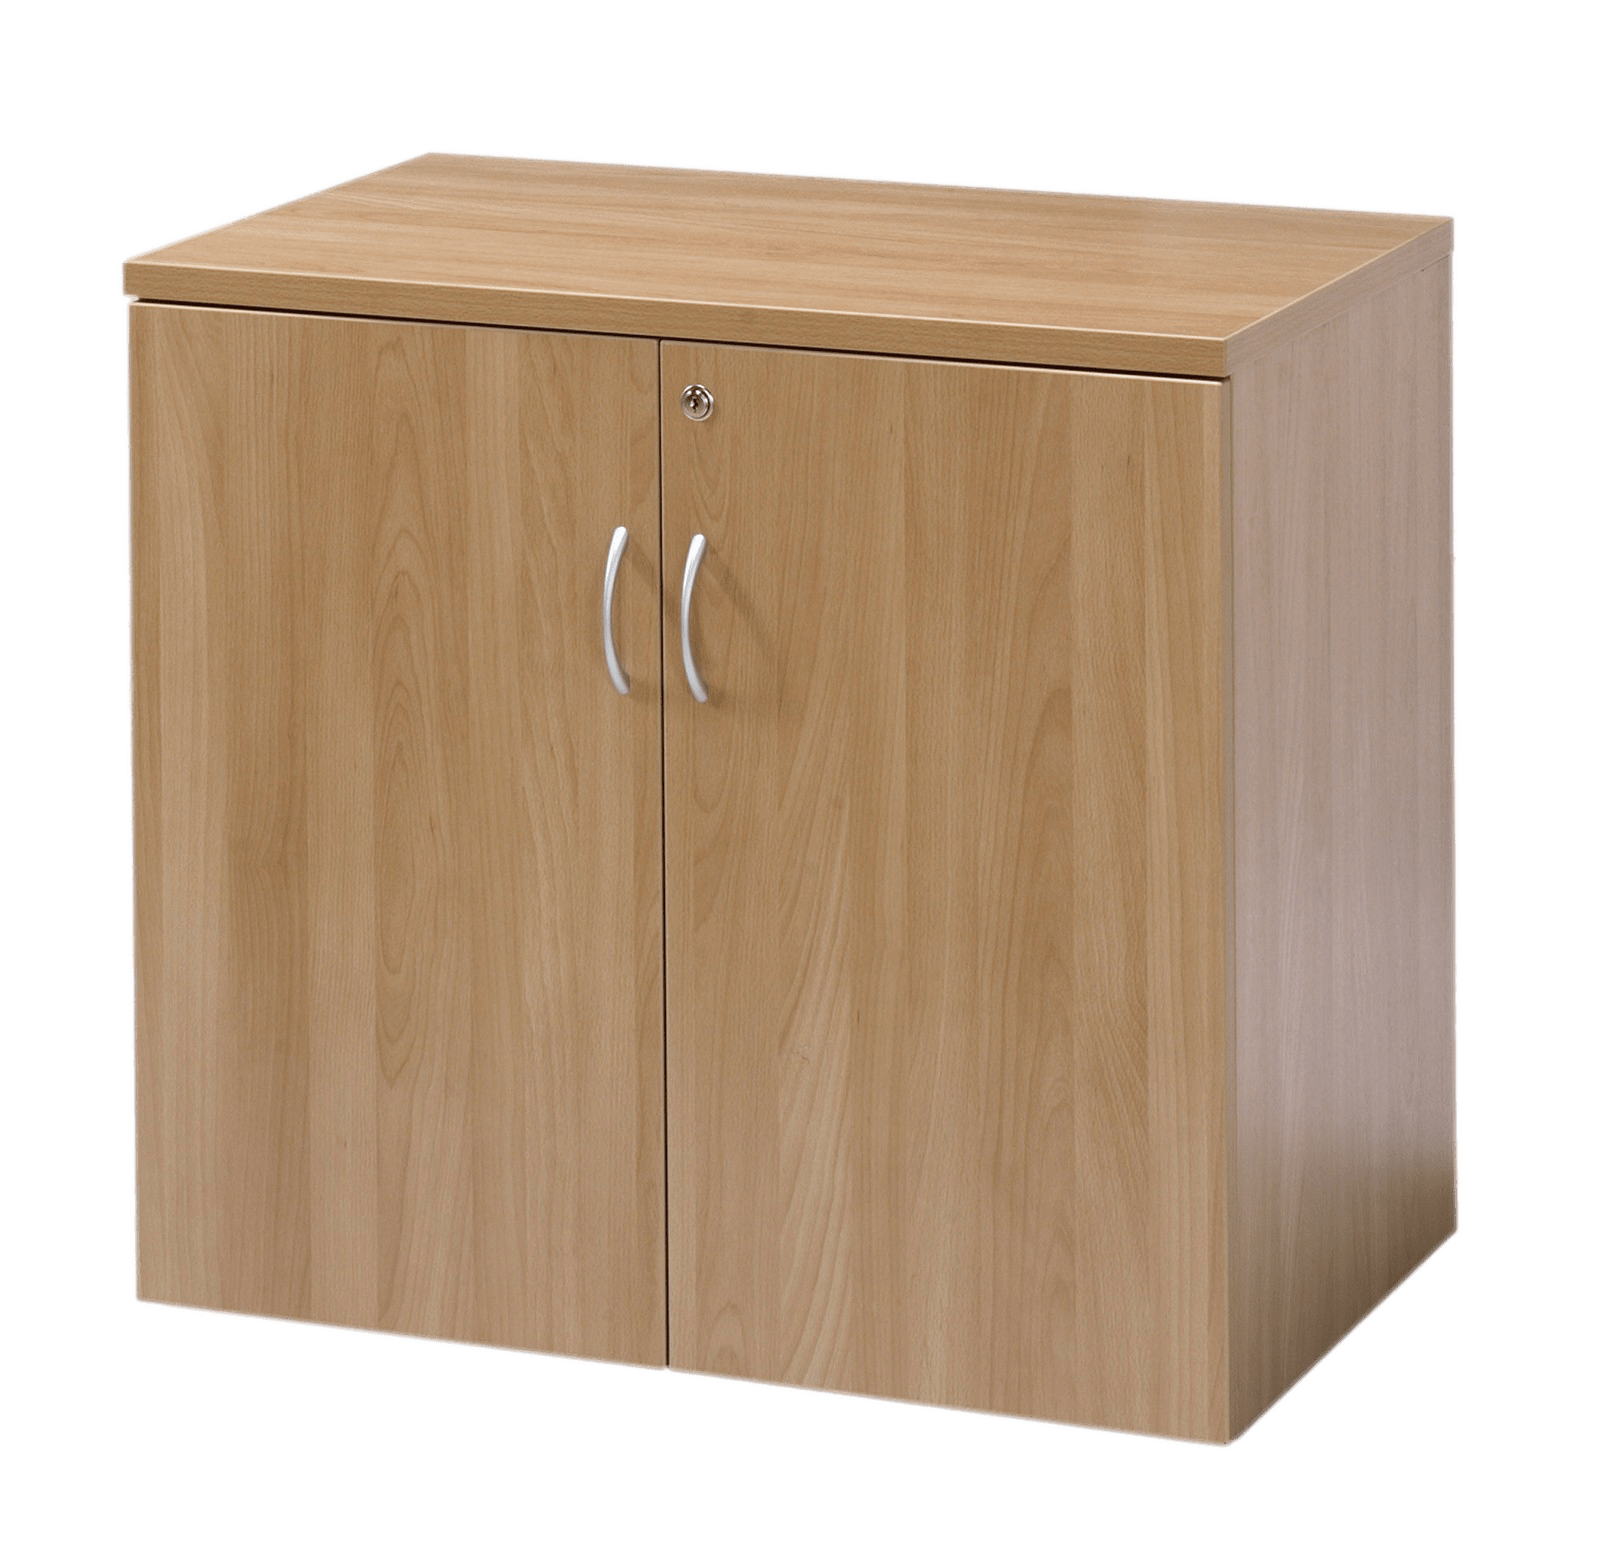 wood office cabinet. Wooden Office Cupboard Wood Cabinet